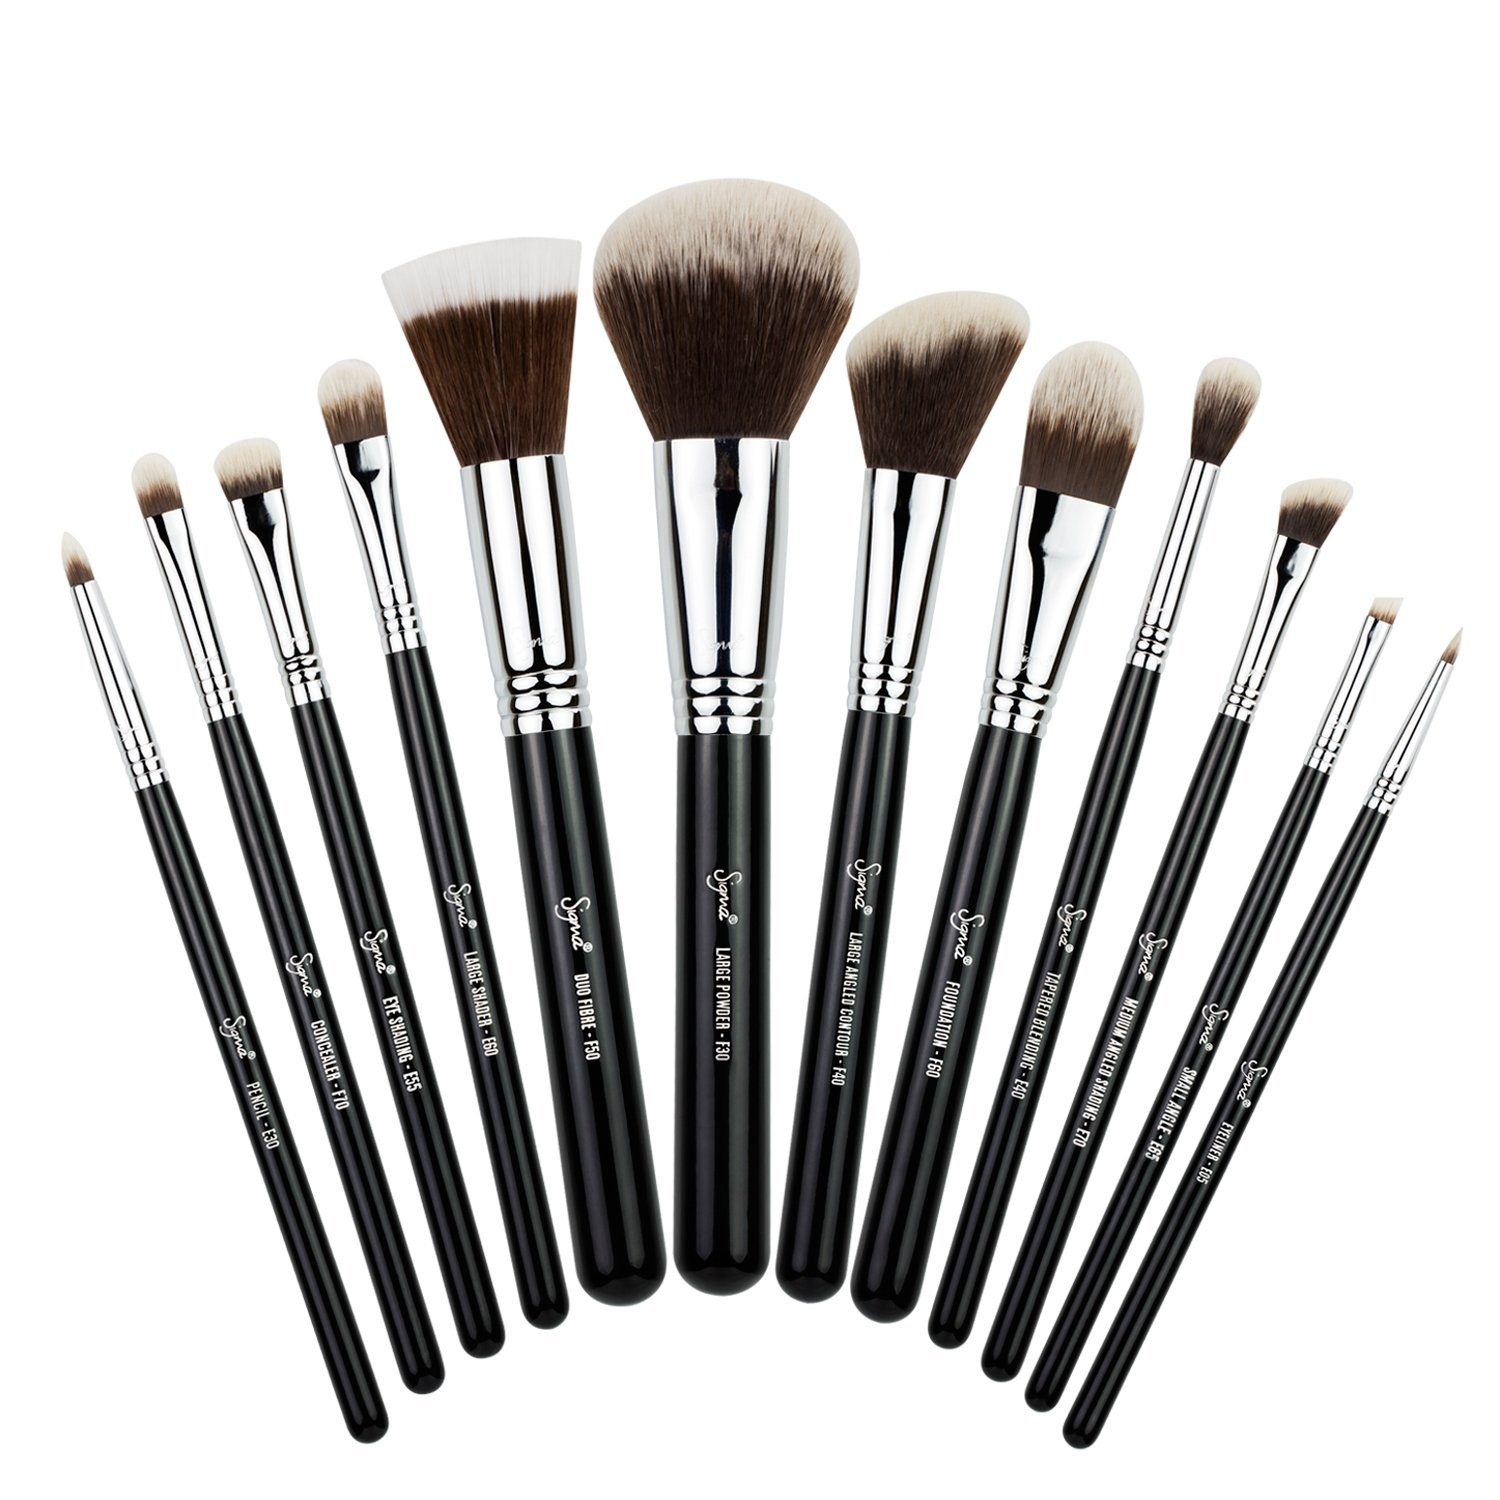 Our makeup brushes and cosmetics are for beauty enthusiasts and professional makeup artists alike. Shop Sigma's award-winning brushes for the best in beauty!